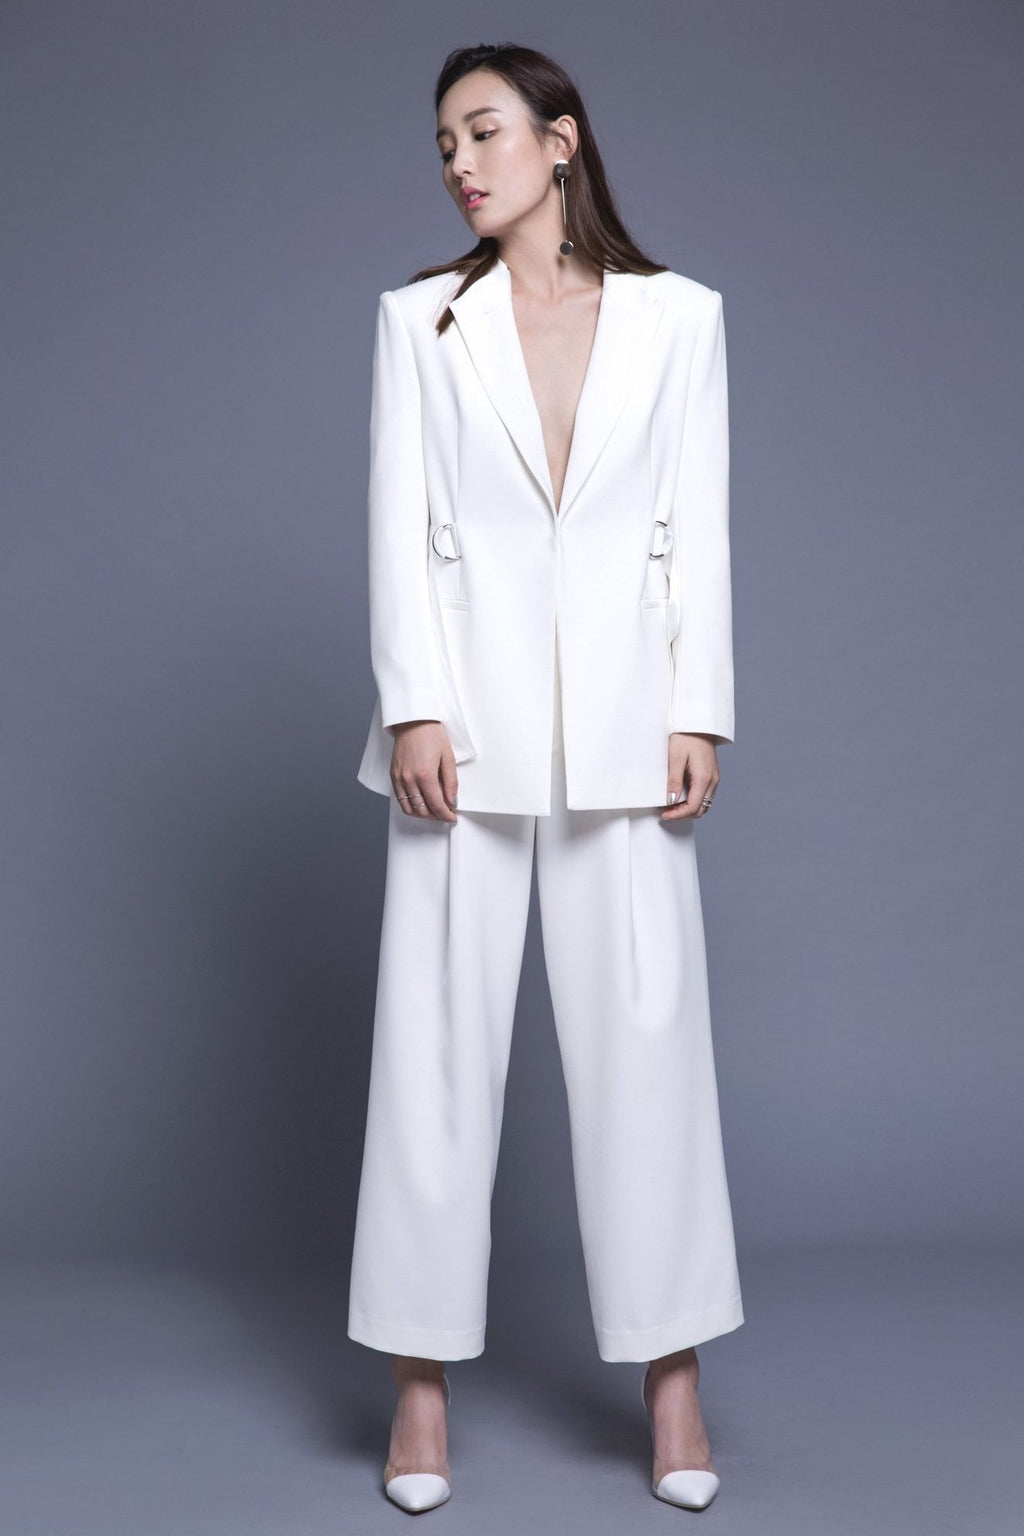 Fever Wang white blazer